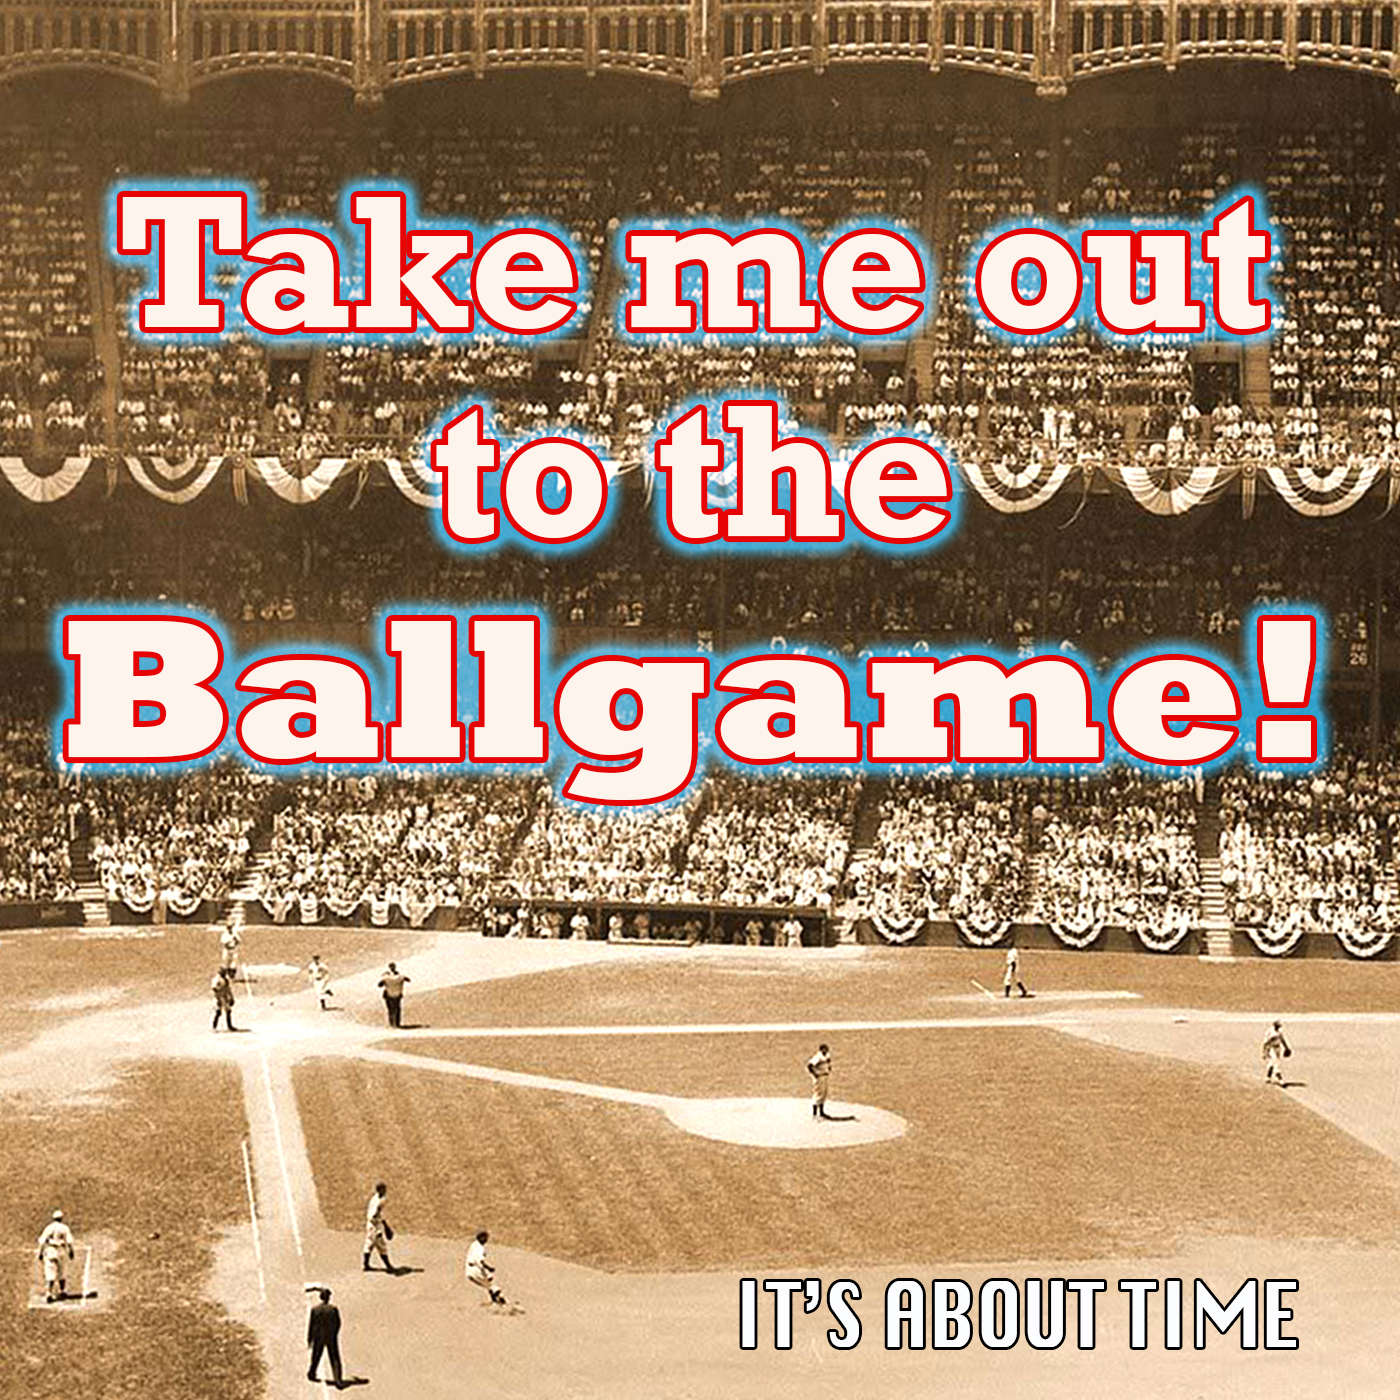 S02E09 - Take Me Out to the Ballgame - Travel in time to meet Babe Ruth